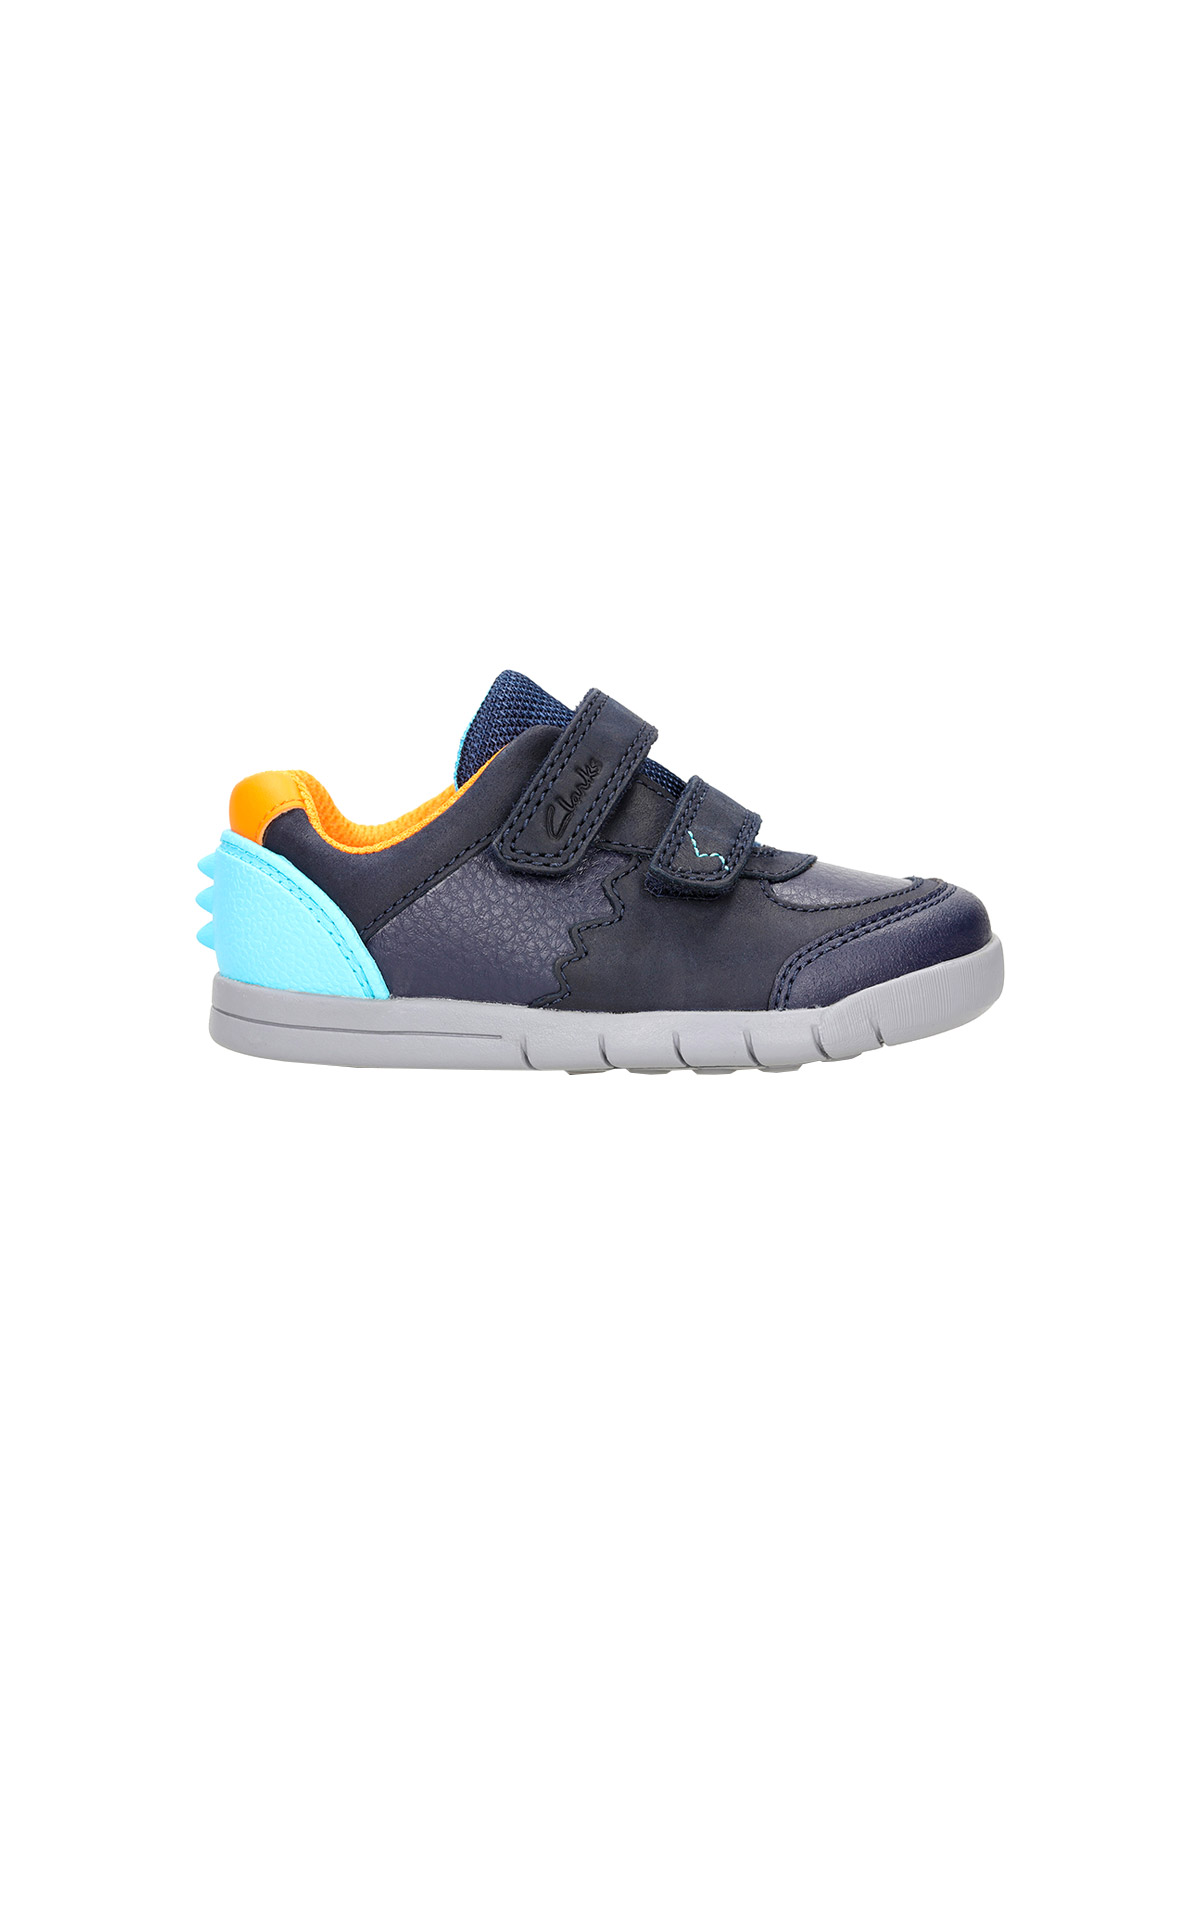 Children's Rex Quest sneaker Clarks